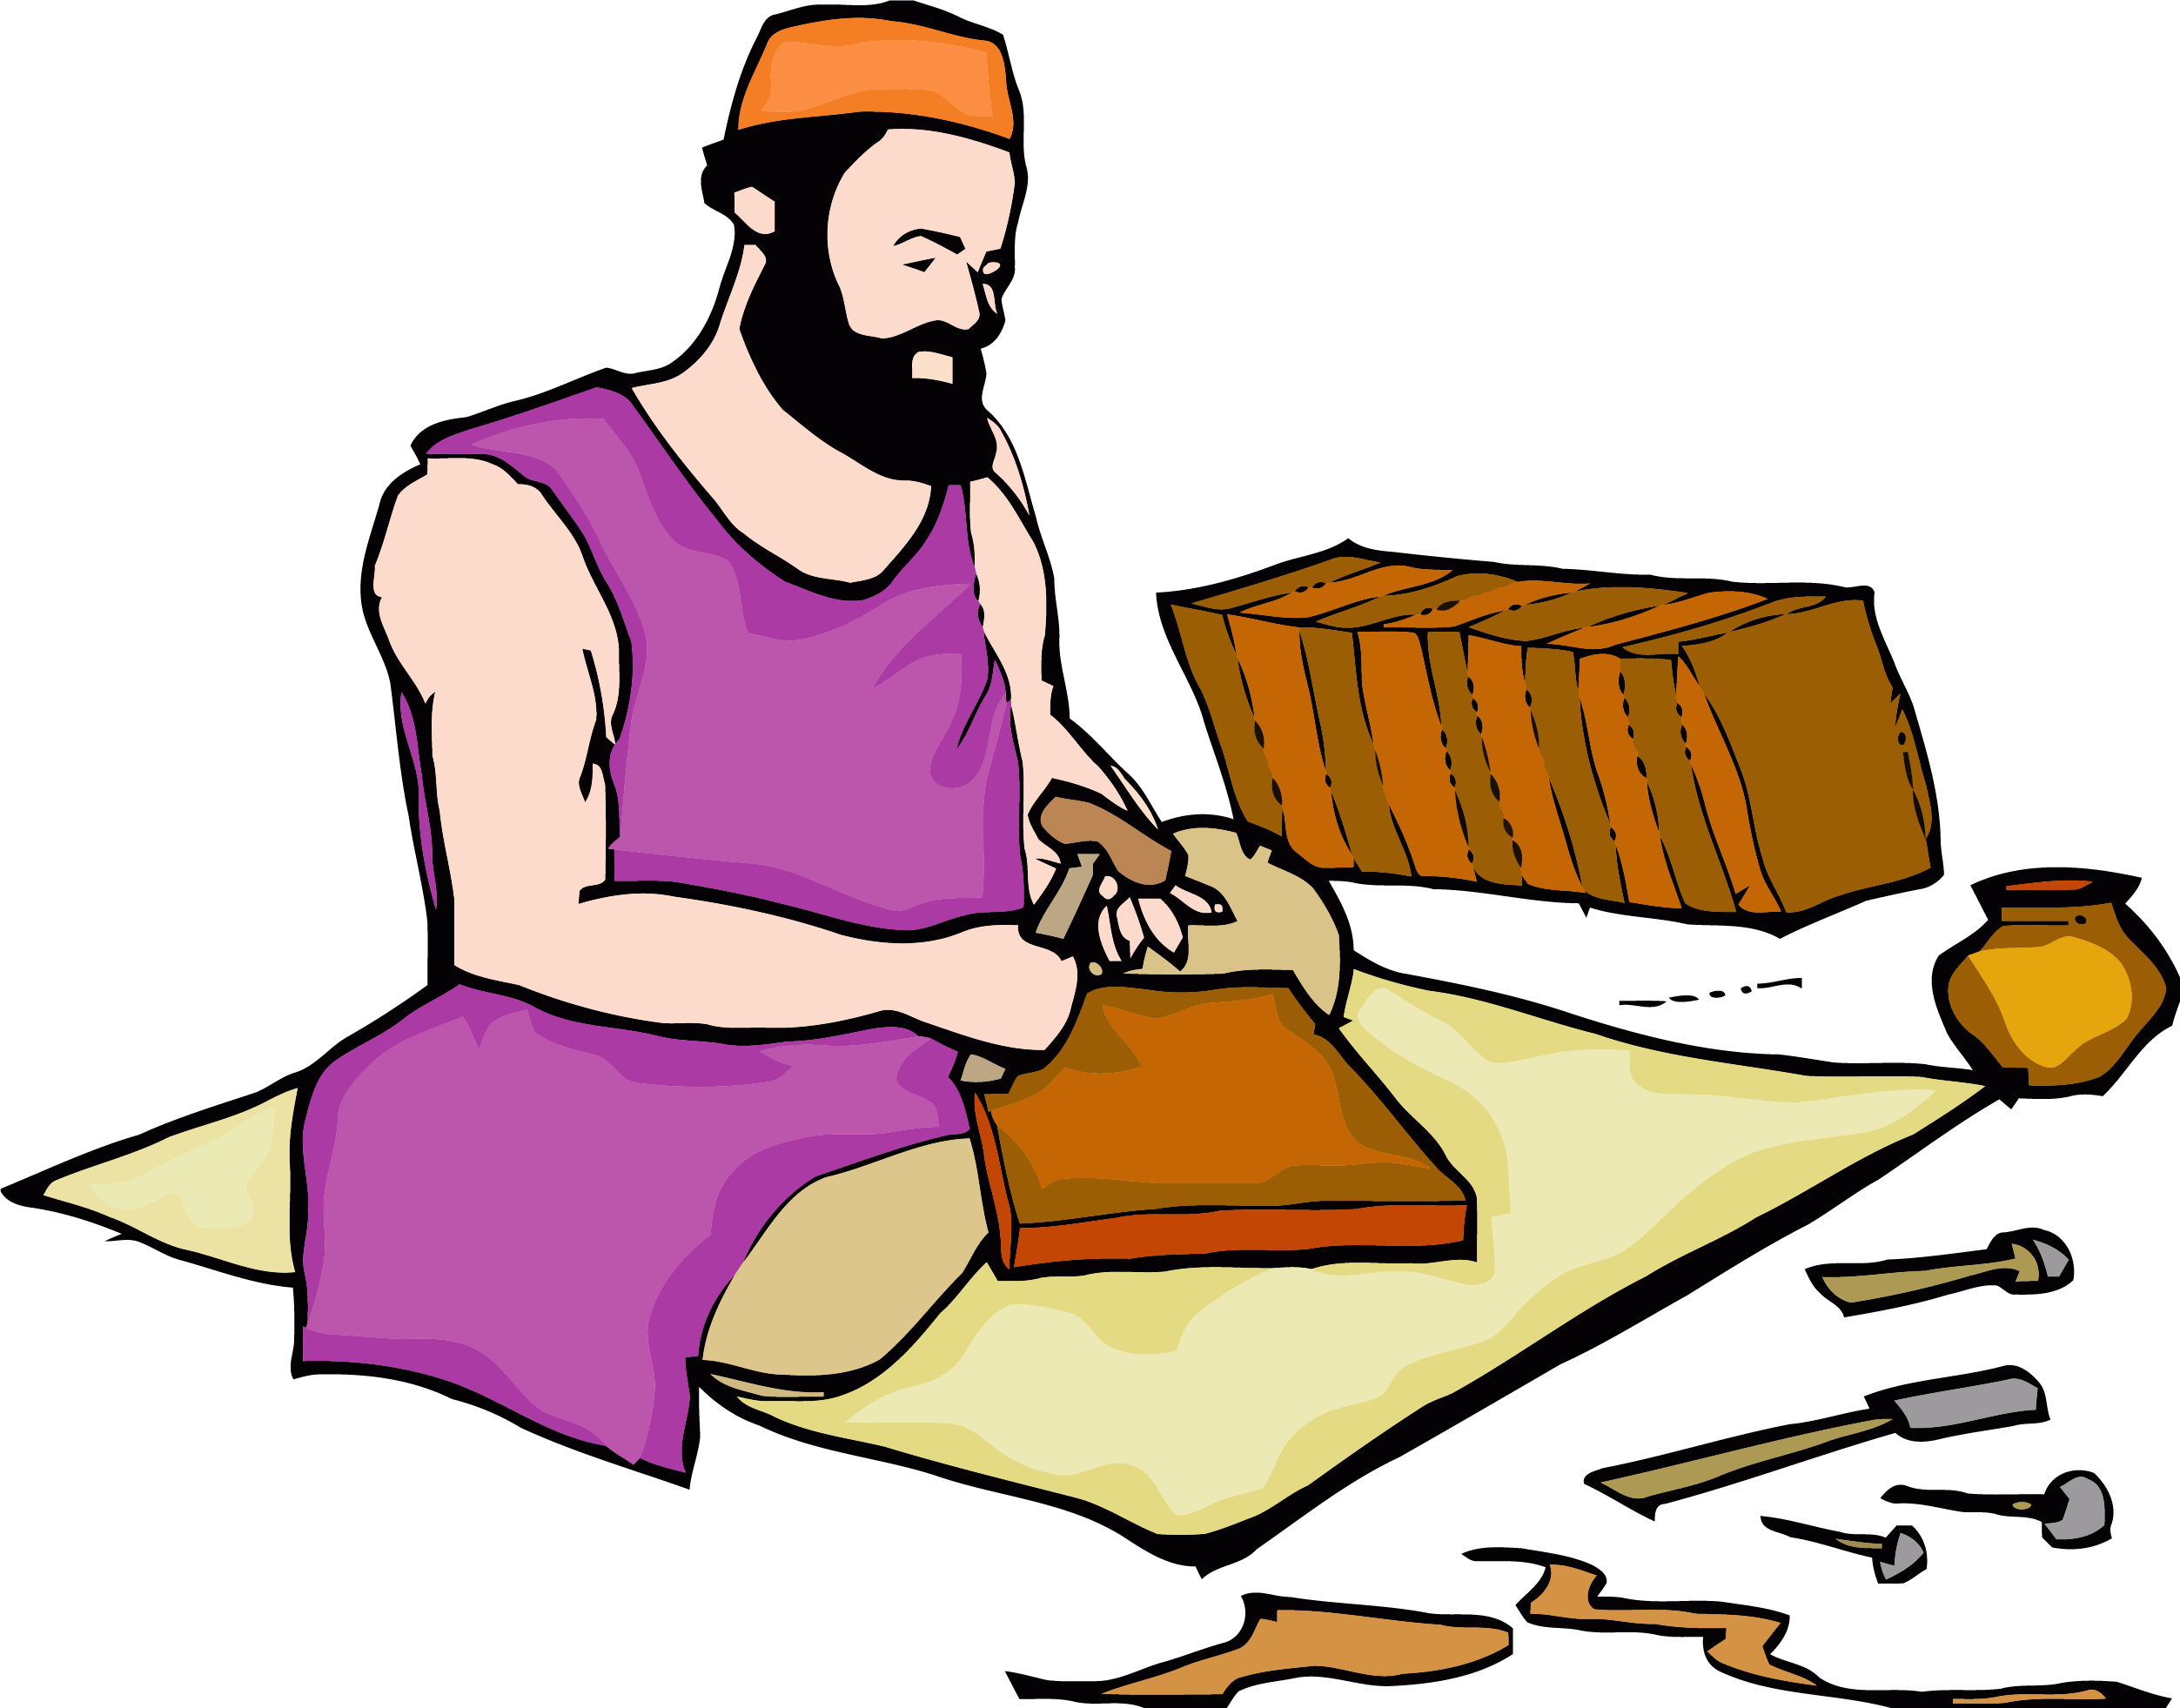 Old carpenter png clipartlyclipartly. Lawyer clipart stock photo